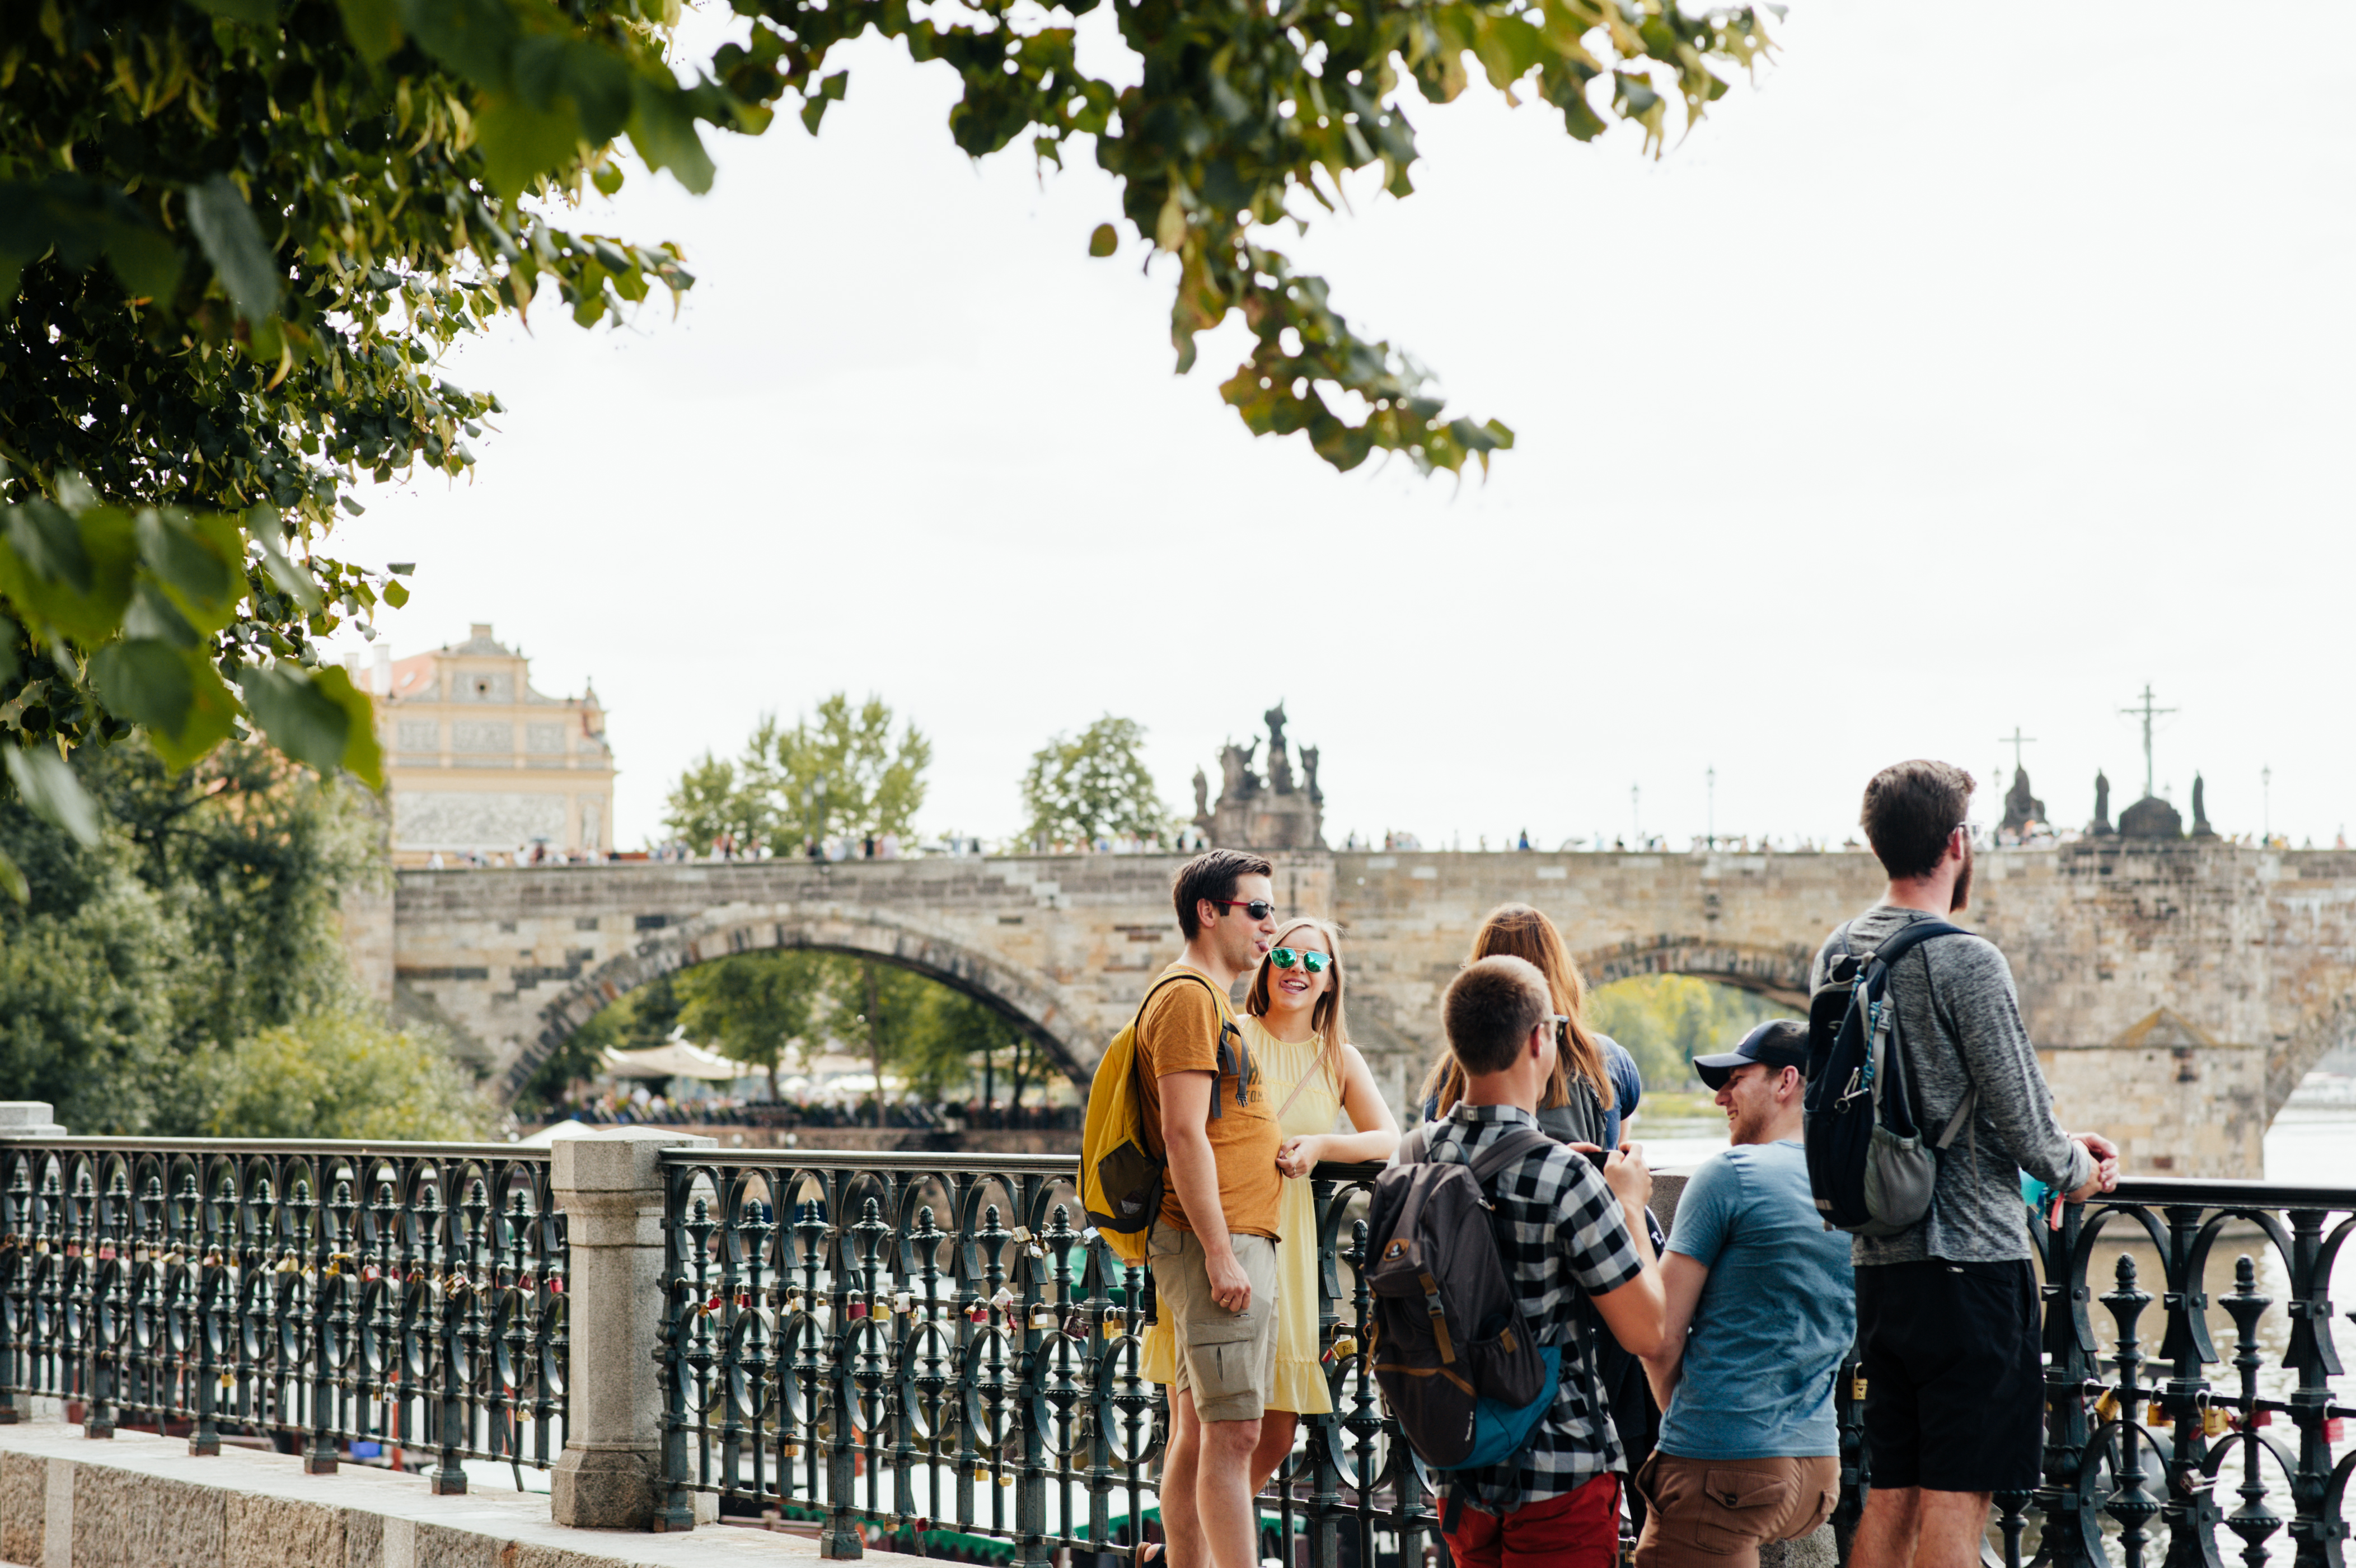 some tourists in prague during a free walking tour, with Charles Bridge in the distance